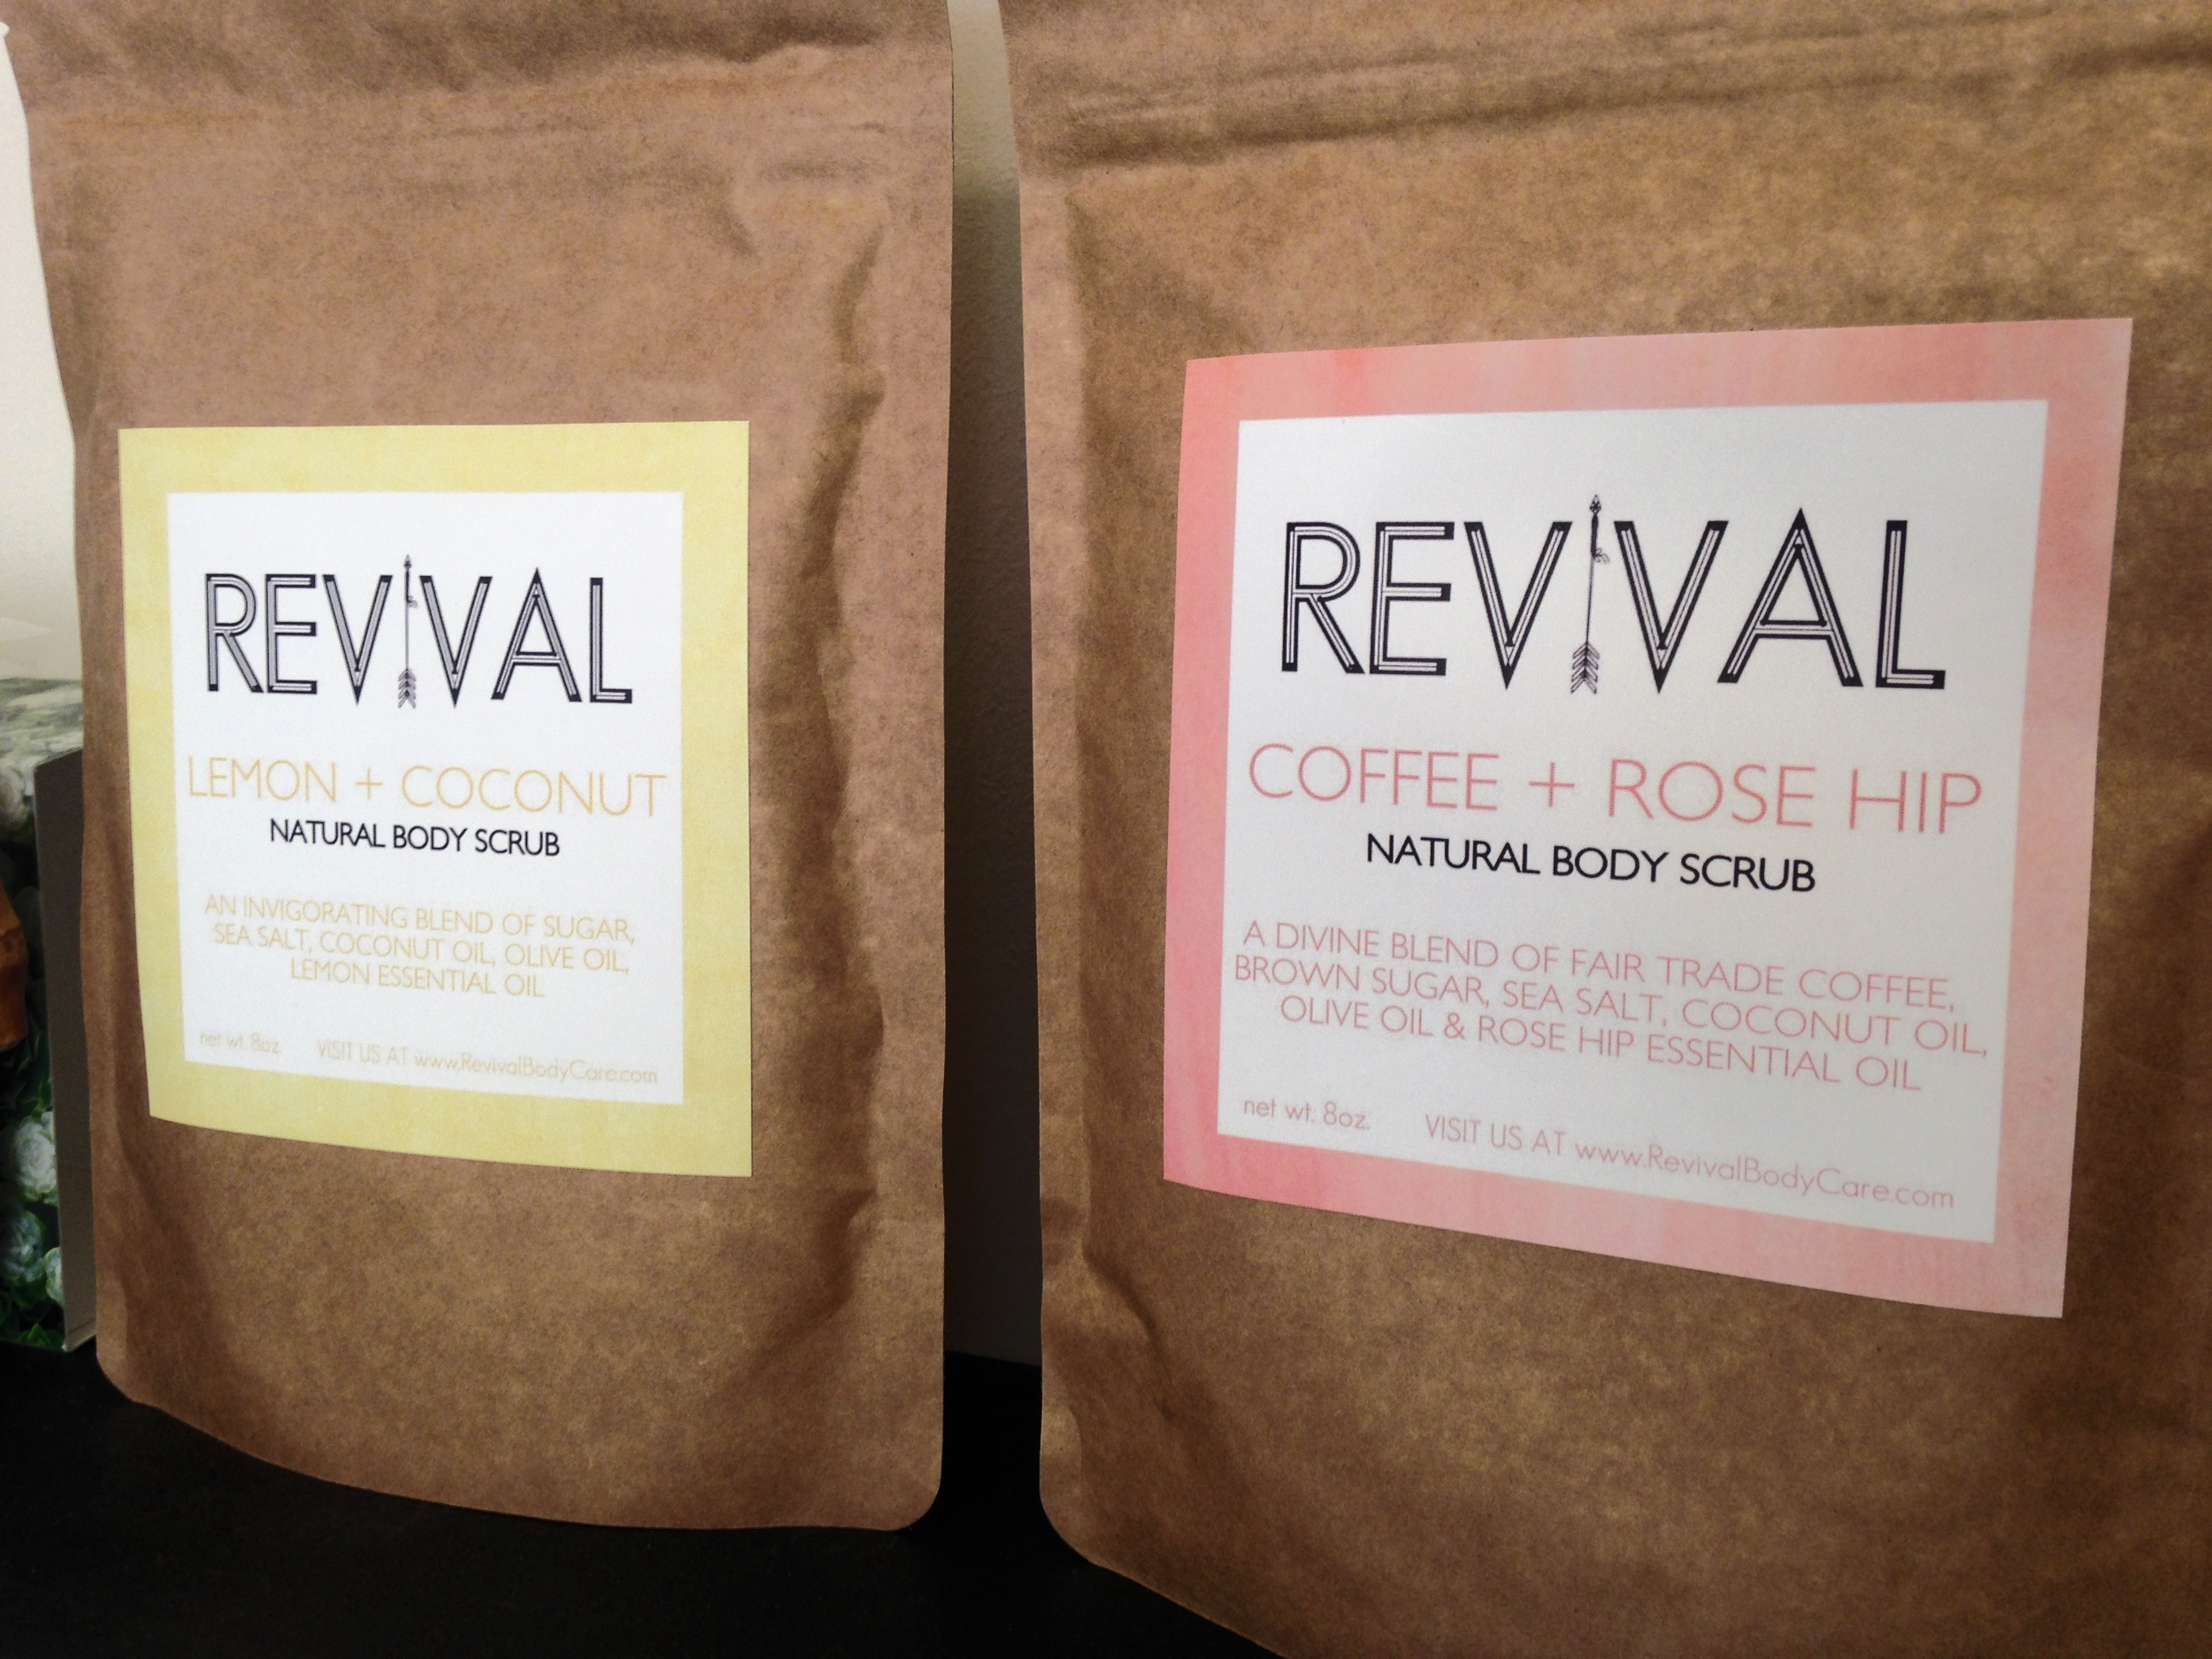 Lemon + Coconut and Coffee + Rose Hip natural body scrubs